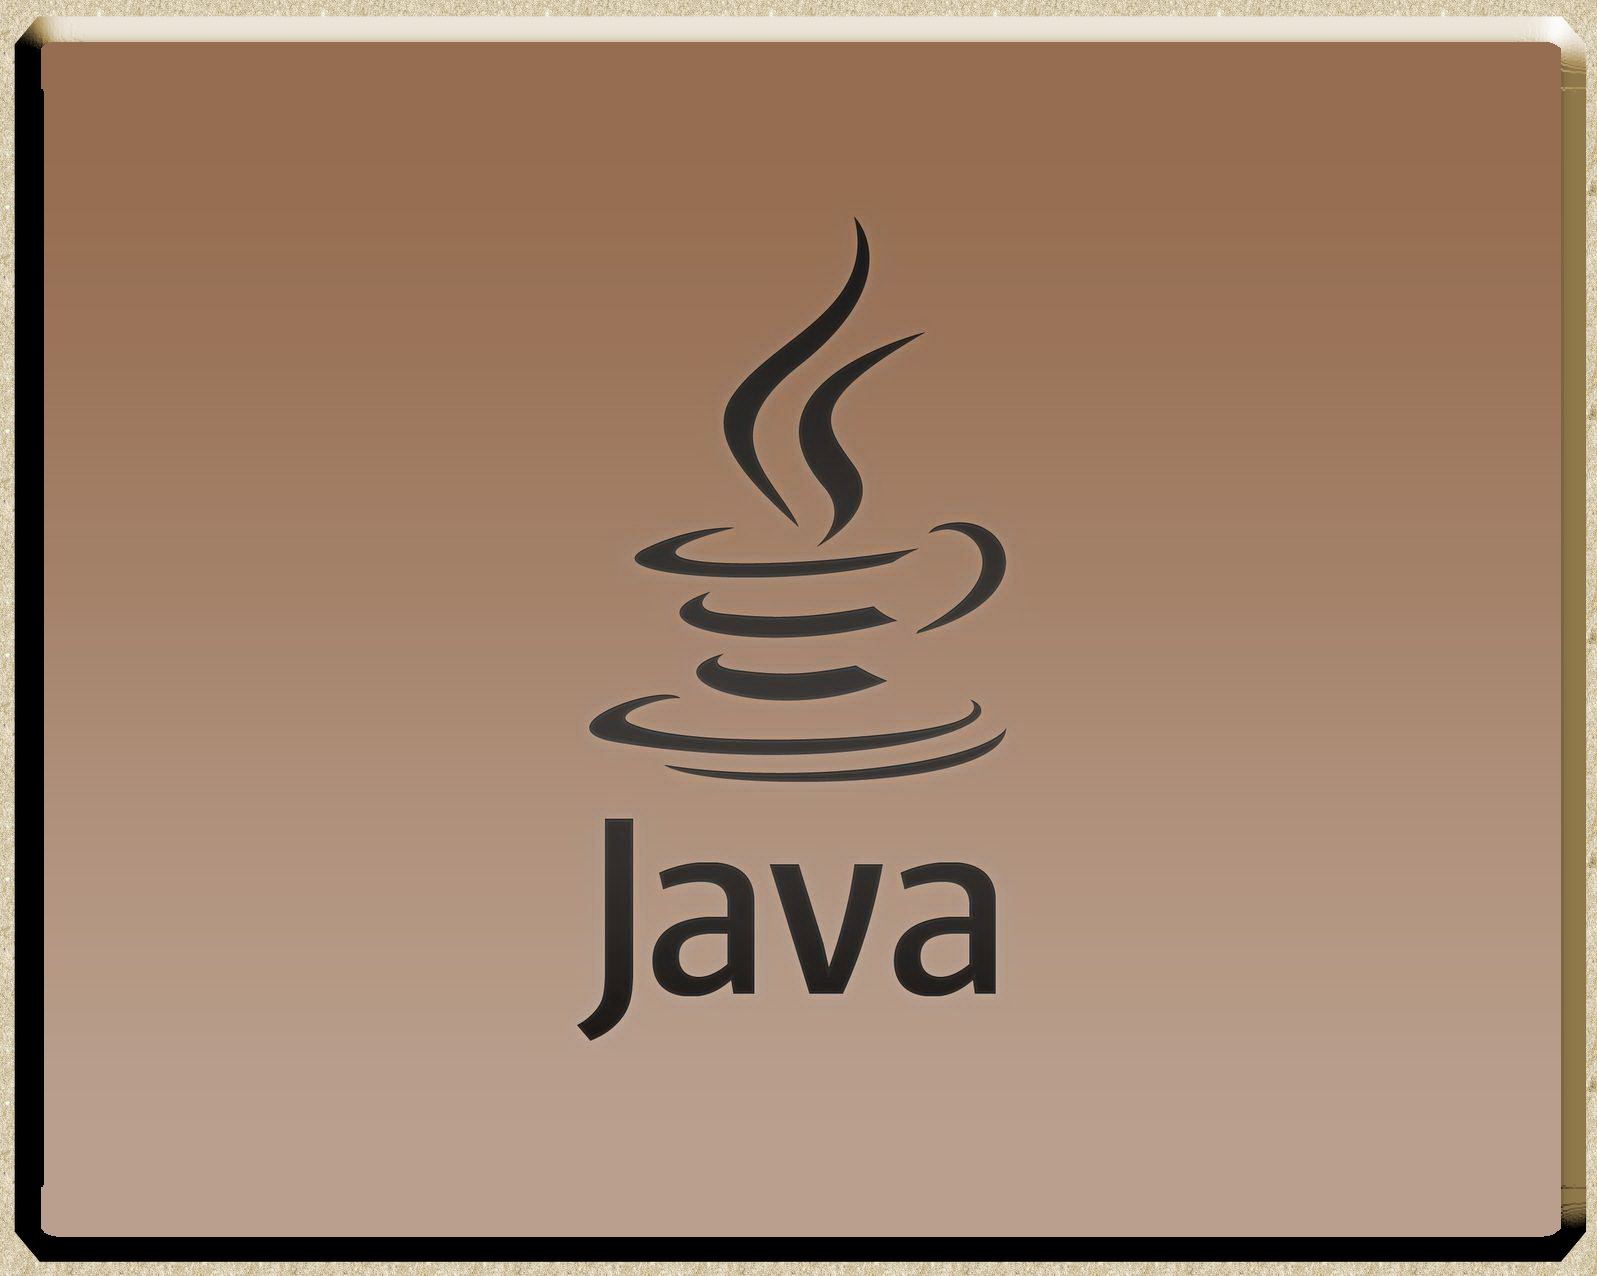 Java Programming Wallpaper Java programming 1597x1276